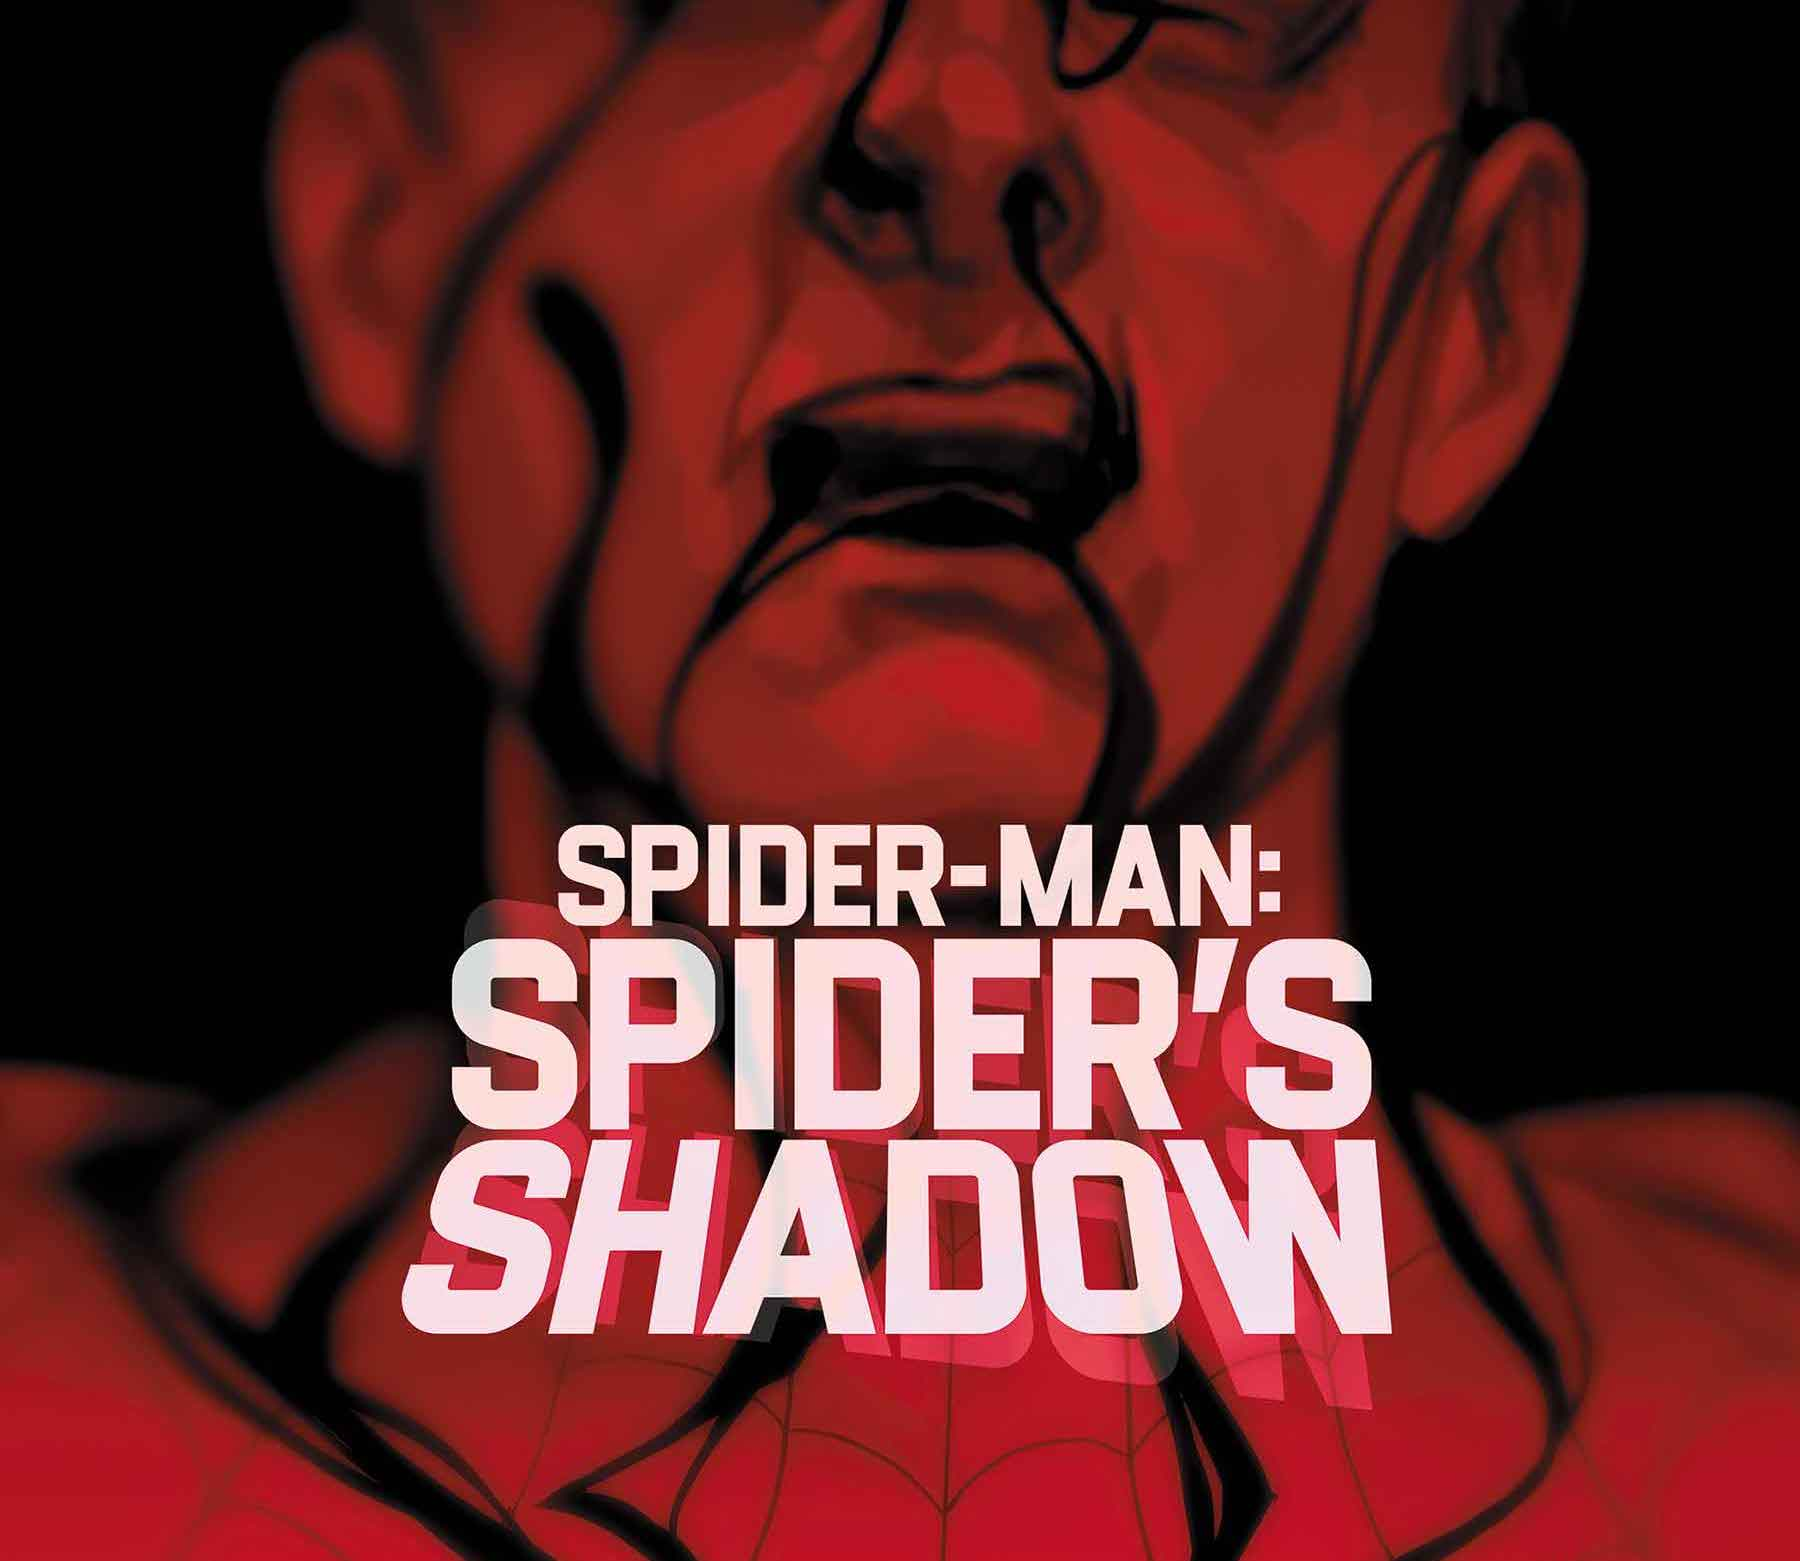 'Spider-Man: Spider's Shadow' is an exciting revamp of 'What If..?'